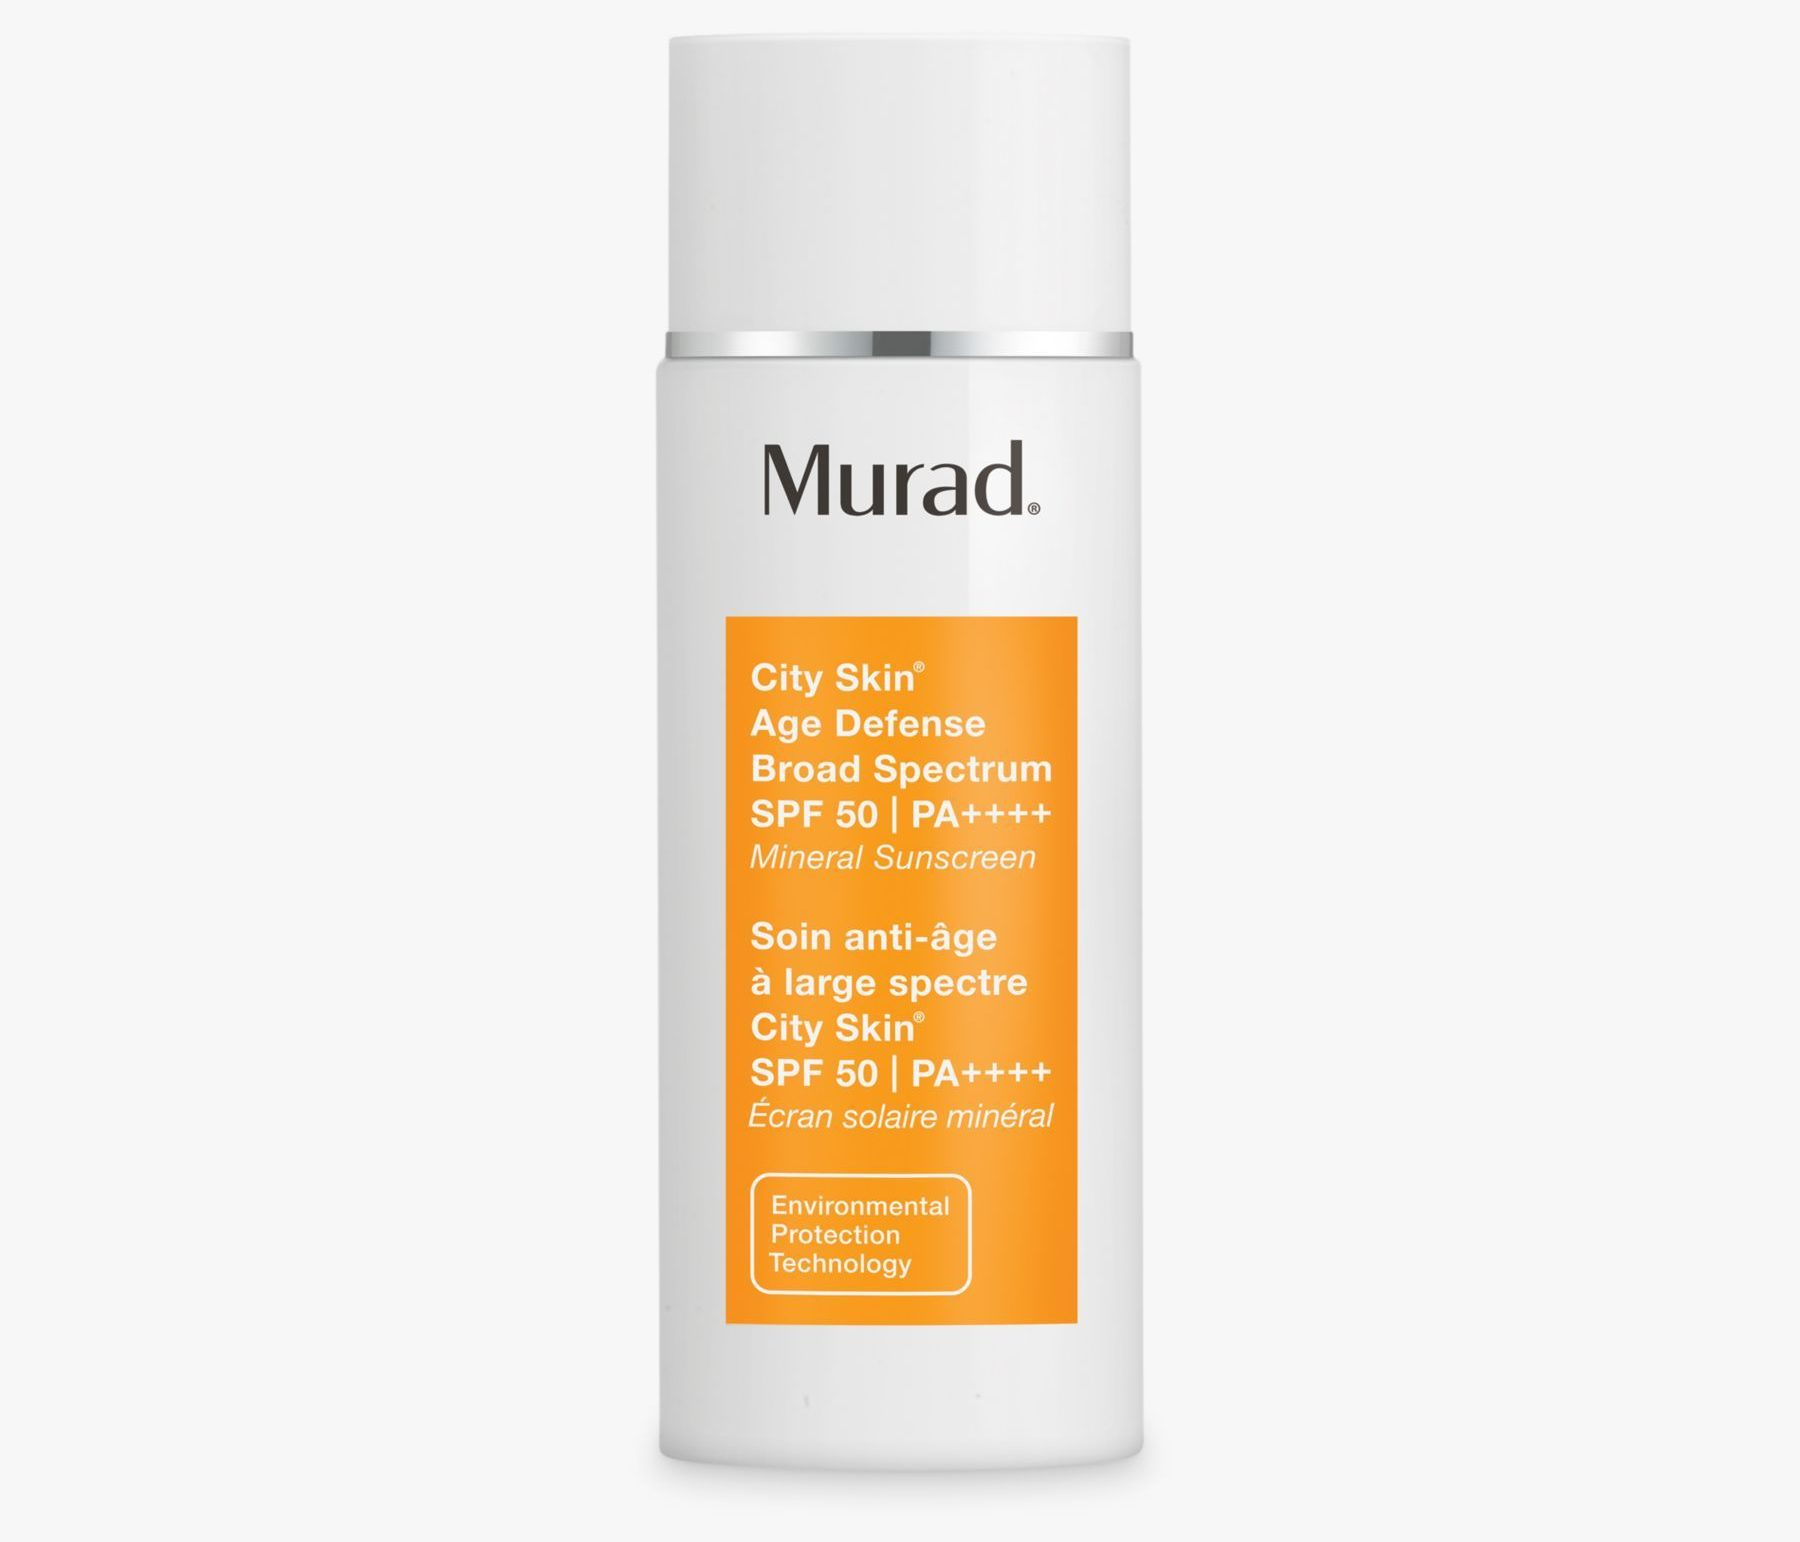 My Celebrity Life – Murad City Skin Age Defence Broad Spectrum SPF50